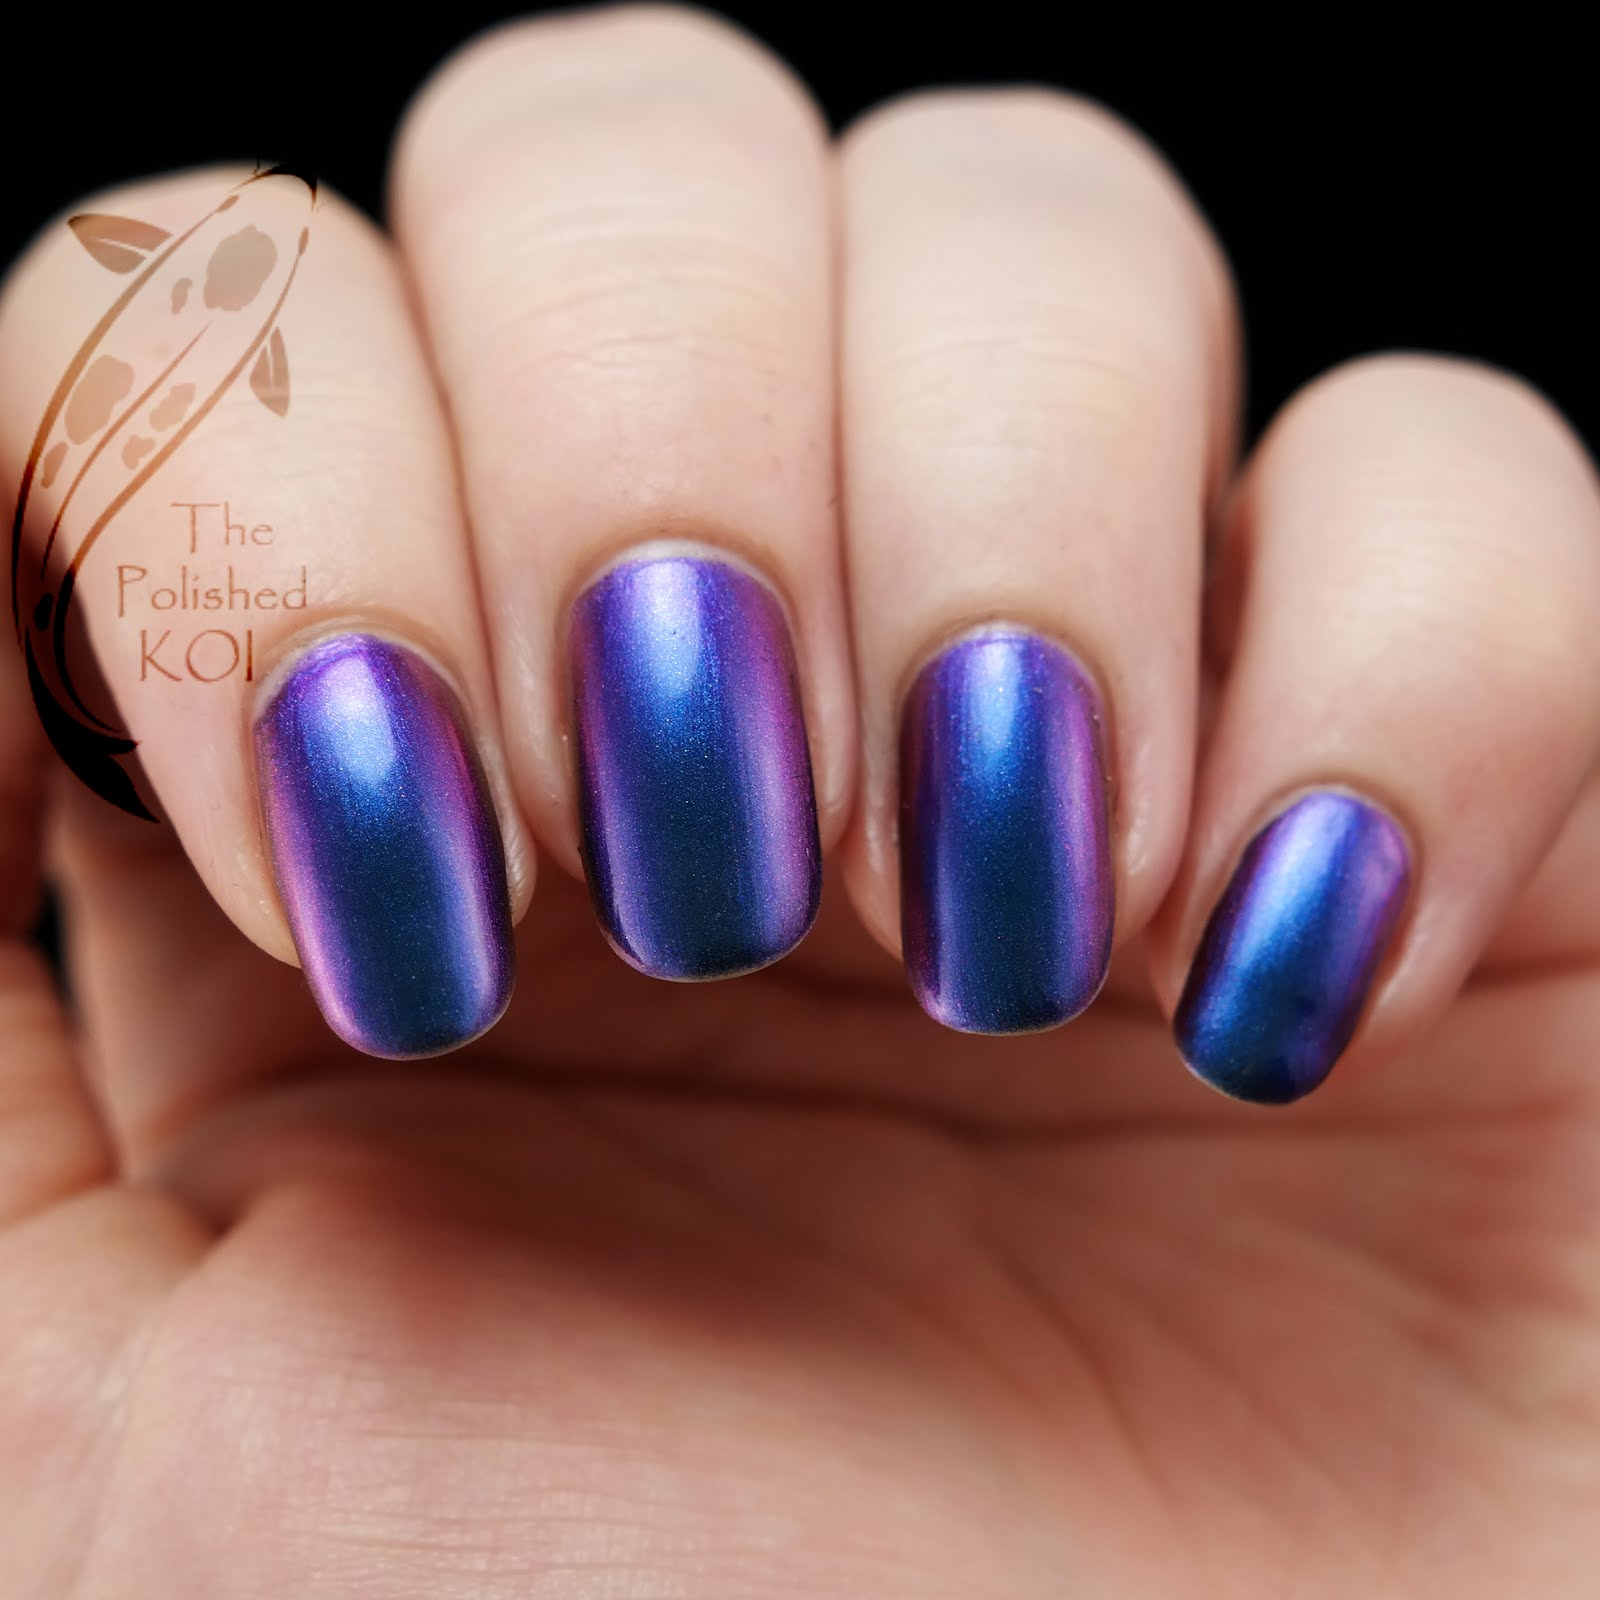 The Polished KOI: Swatch & Art: KBShimmer - Shade Shifter